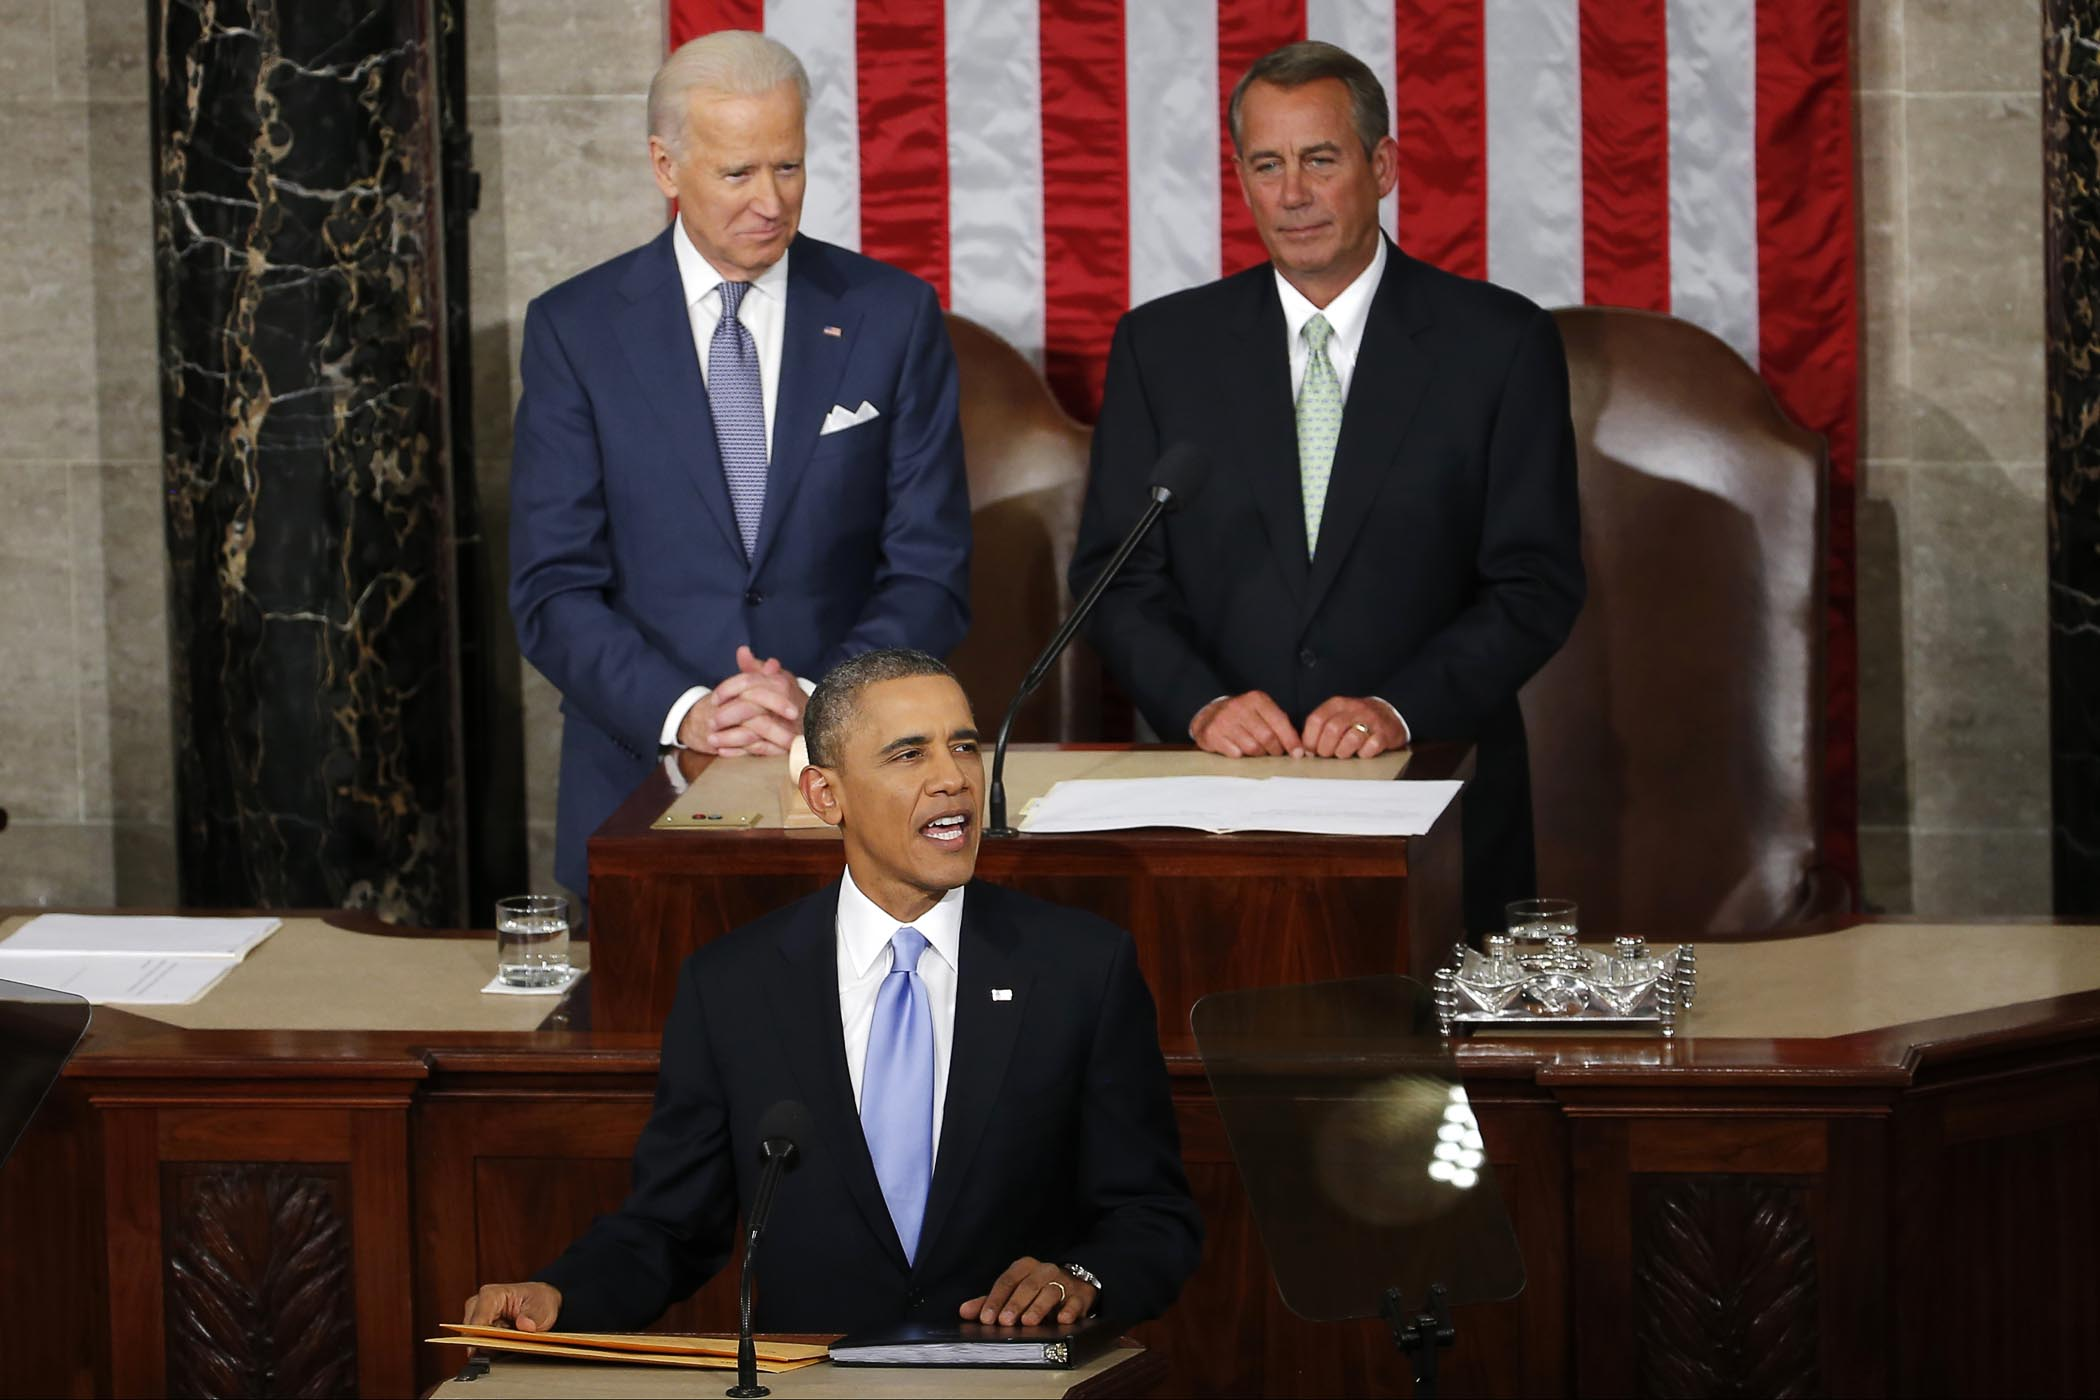 President Barack Obama takes the podium to give his State of the Union address on Capitol Hill in Washington, Tuesday Jan. 28, 2014. Vice President Joe Biden and House Speaker John Boehner of Ohio are behind the president. (AP Photo/Charles Dharapak)